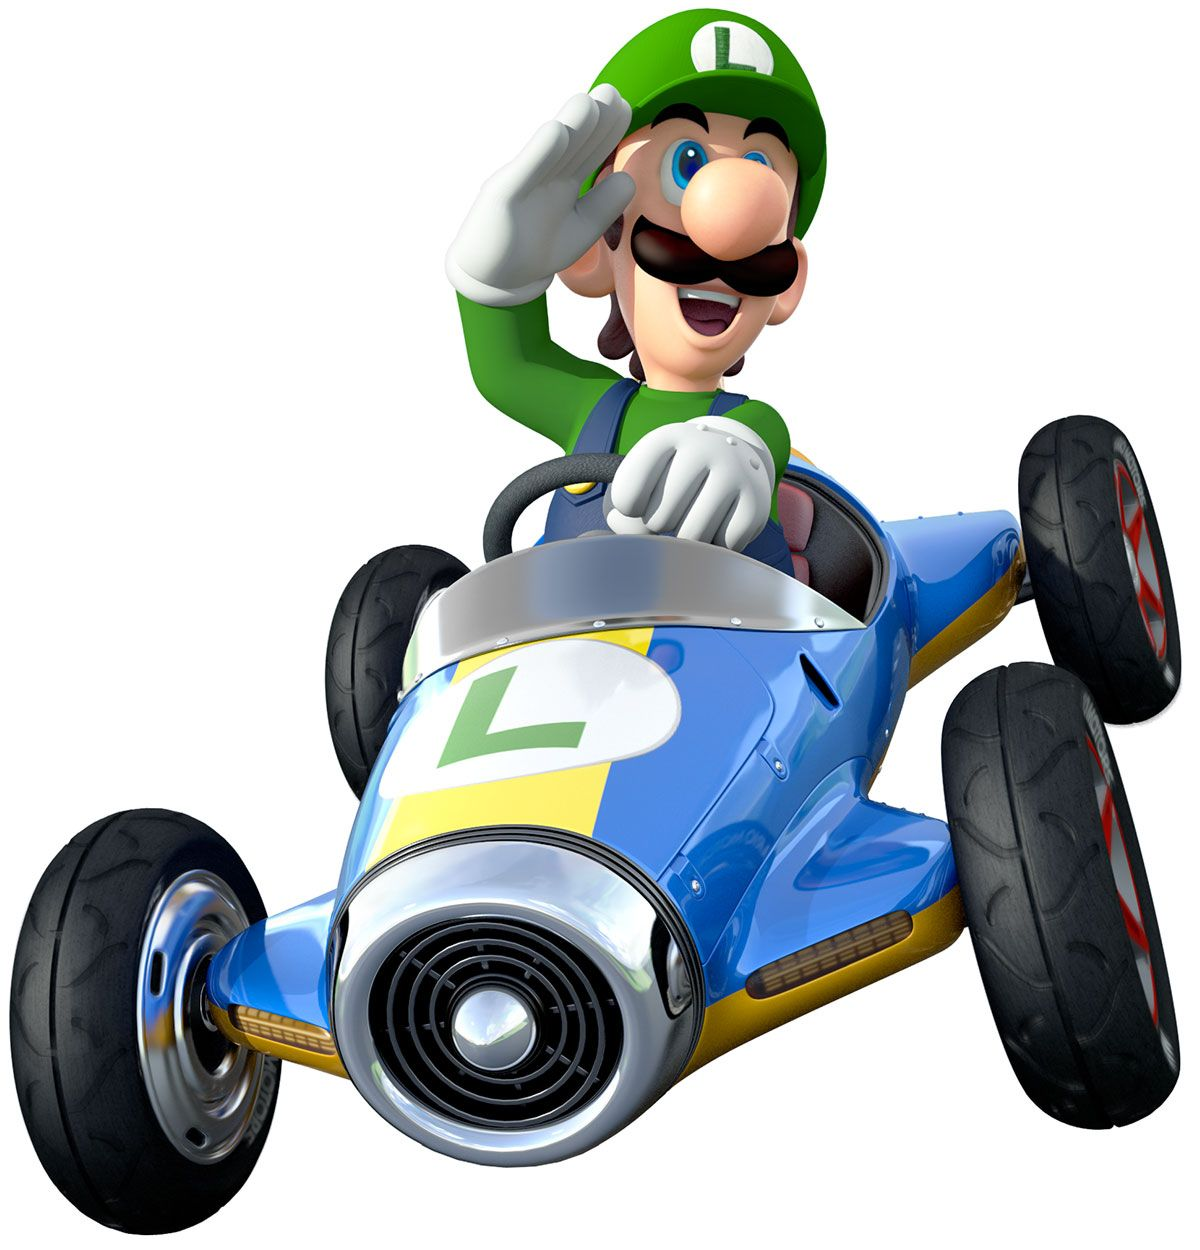 luigi mario kart 8 nintendo wiiu games pinterest mario kart luigi and nintendo. Black Bedroom Furniture Sets. Home Design Ideas